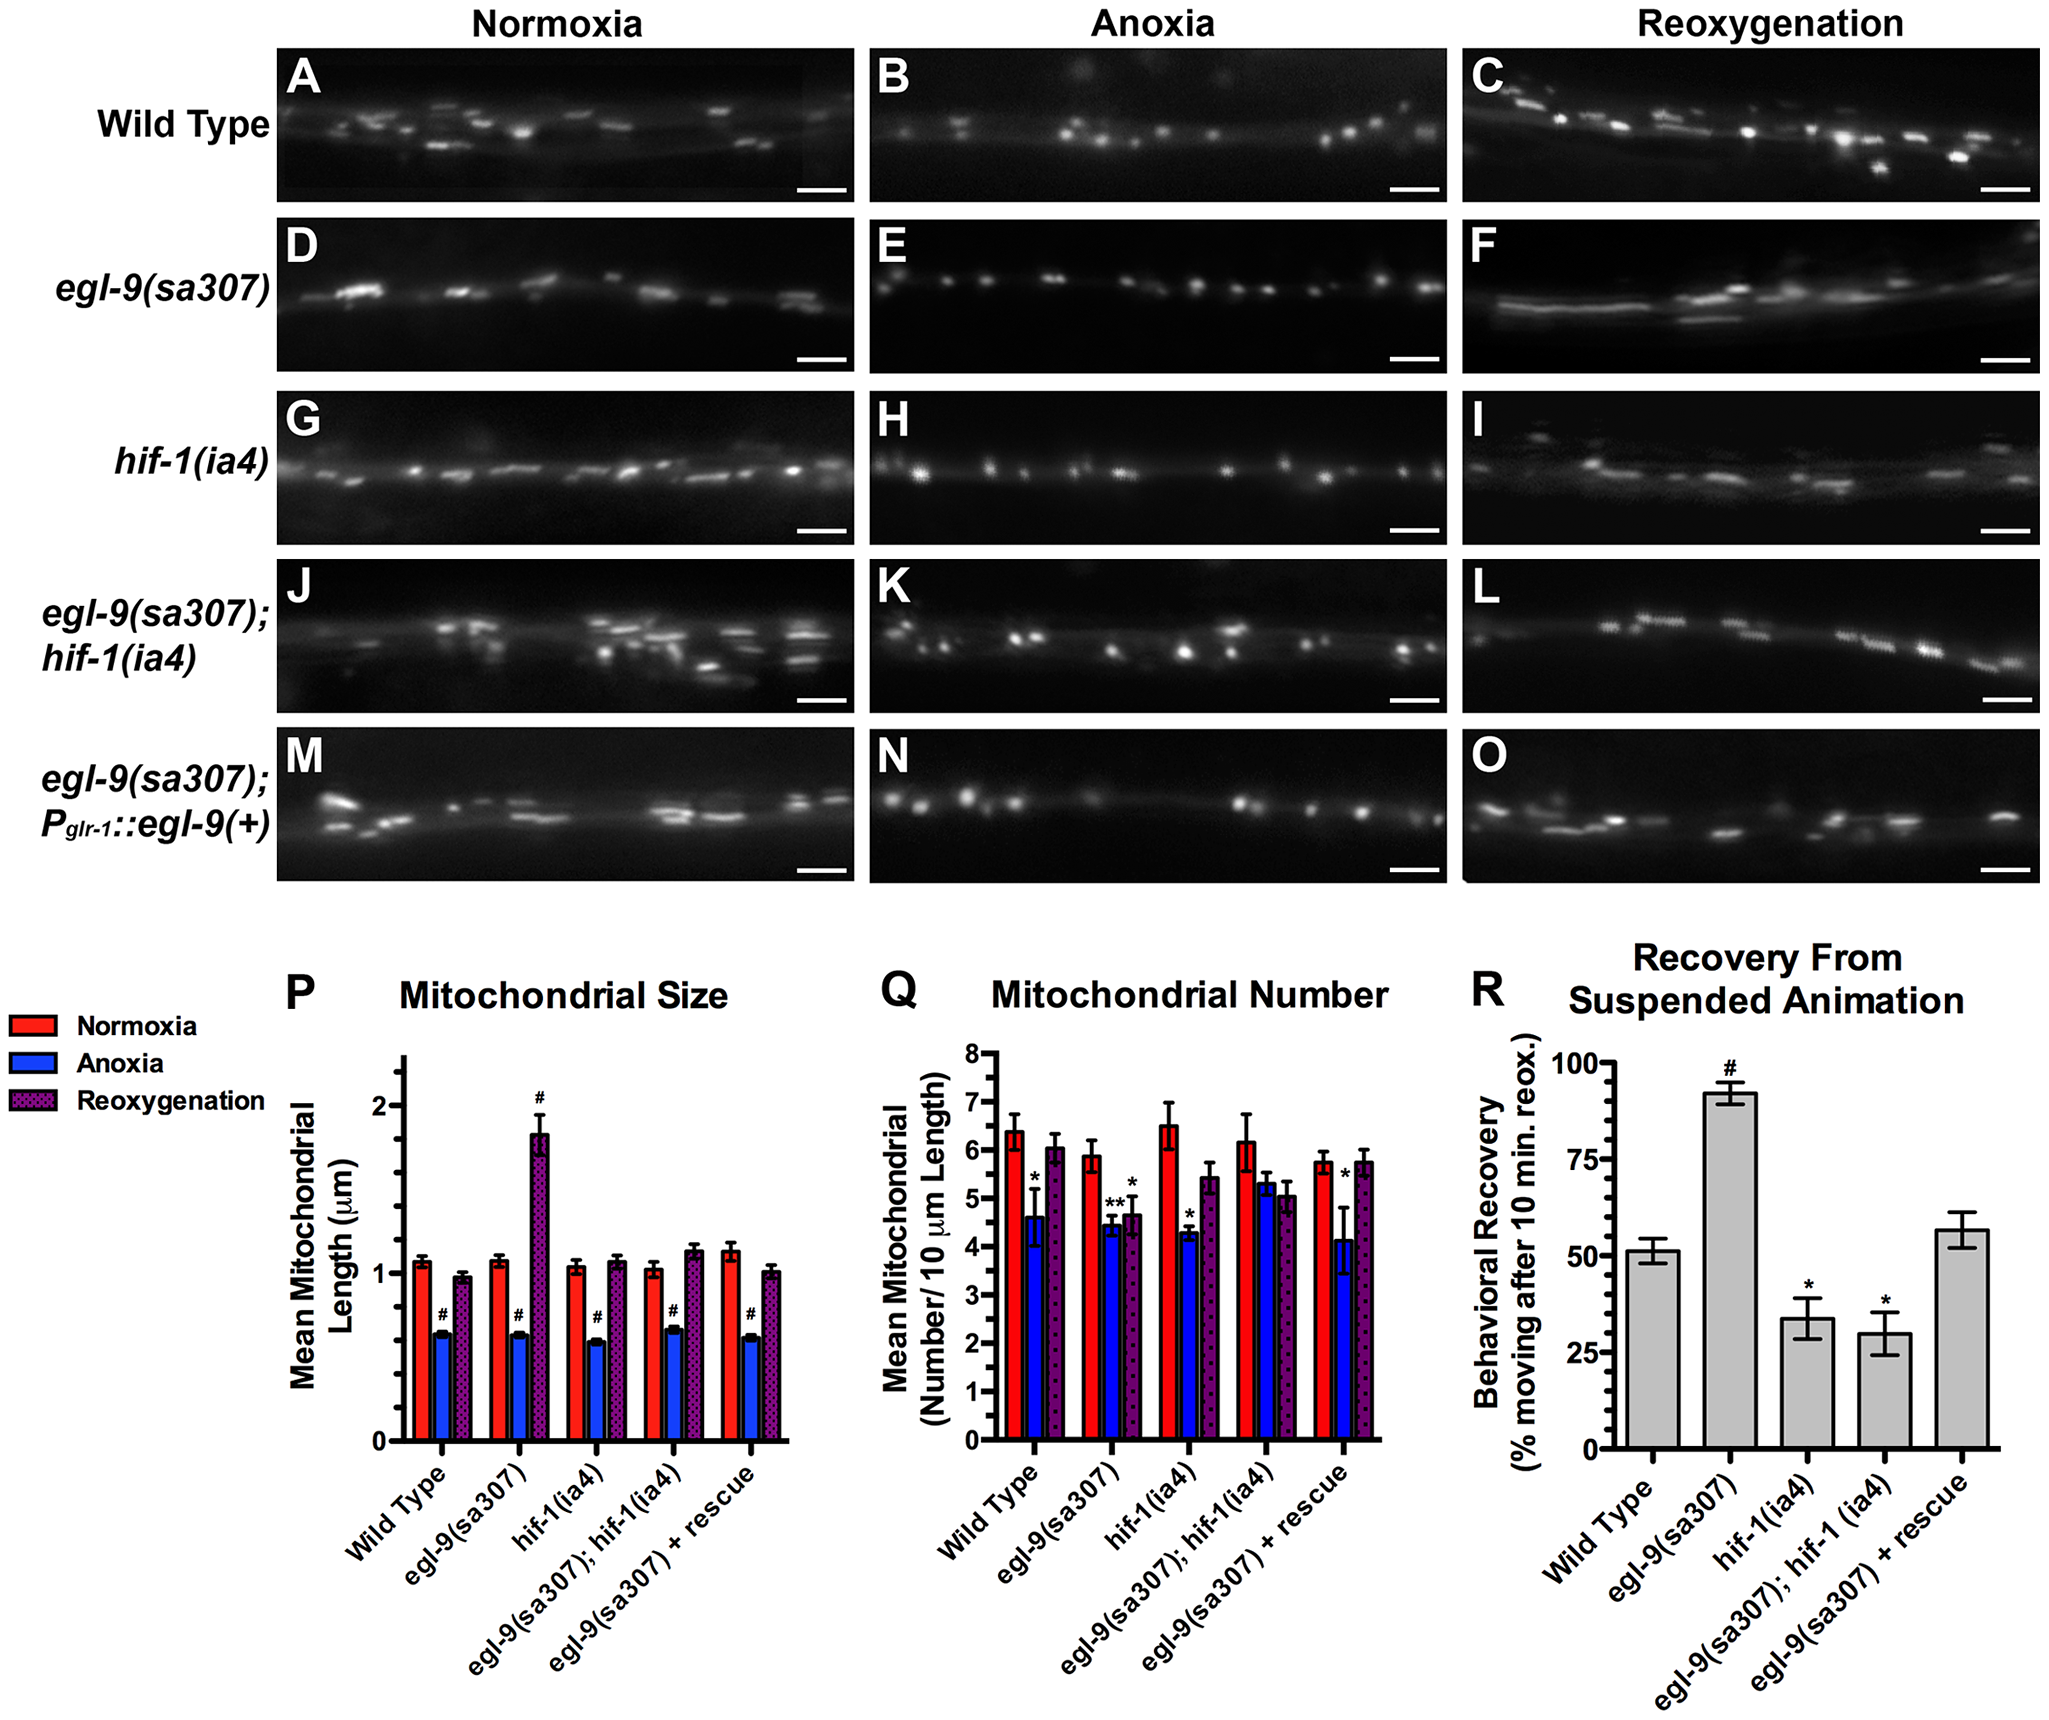 The hypoxia response pathway regulates mitochondrial hyperfusion upon anoxia recovery.